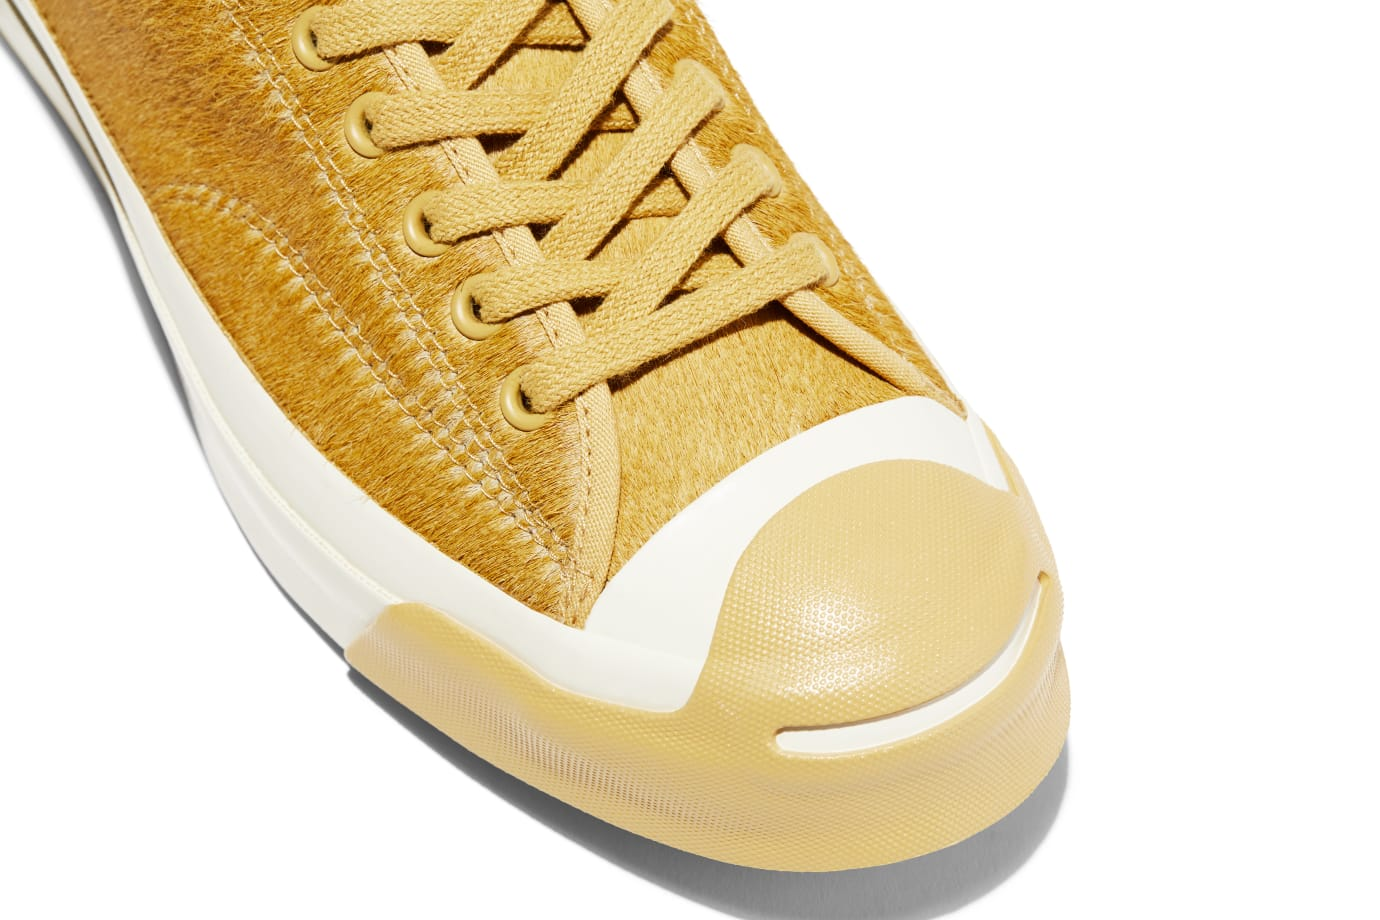 BornxRaised x Converse Jack Purcell 'Camel' (Toe)